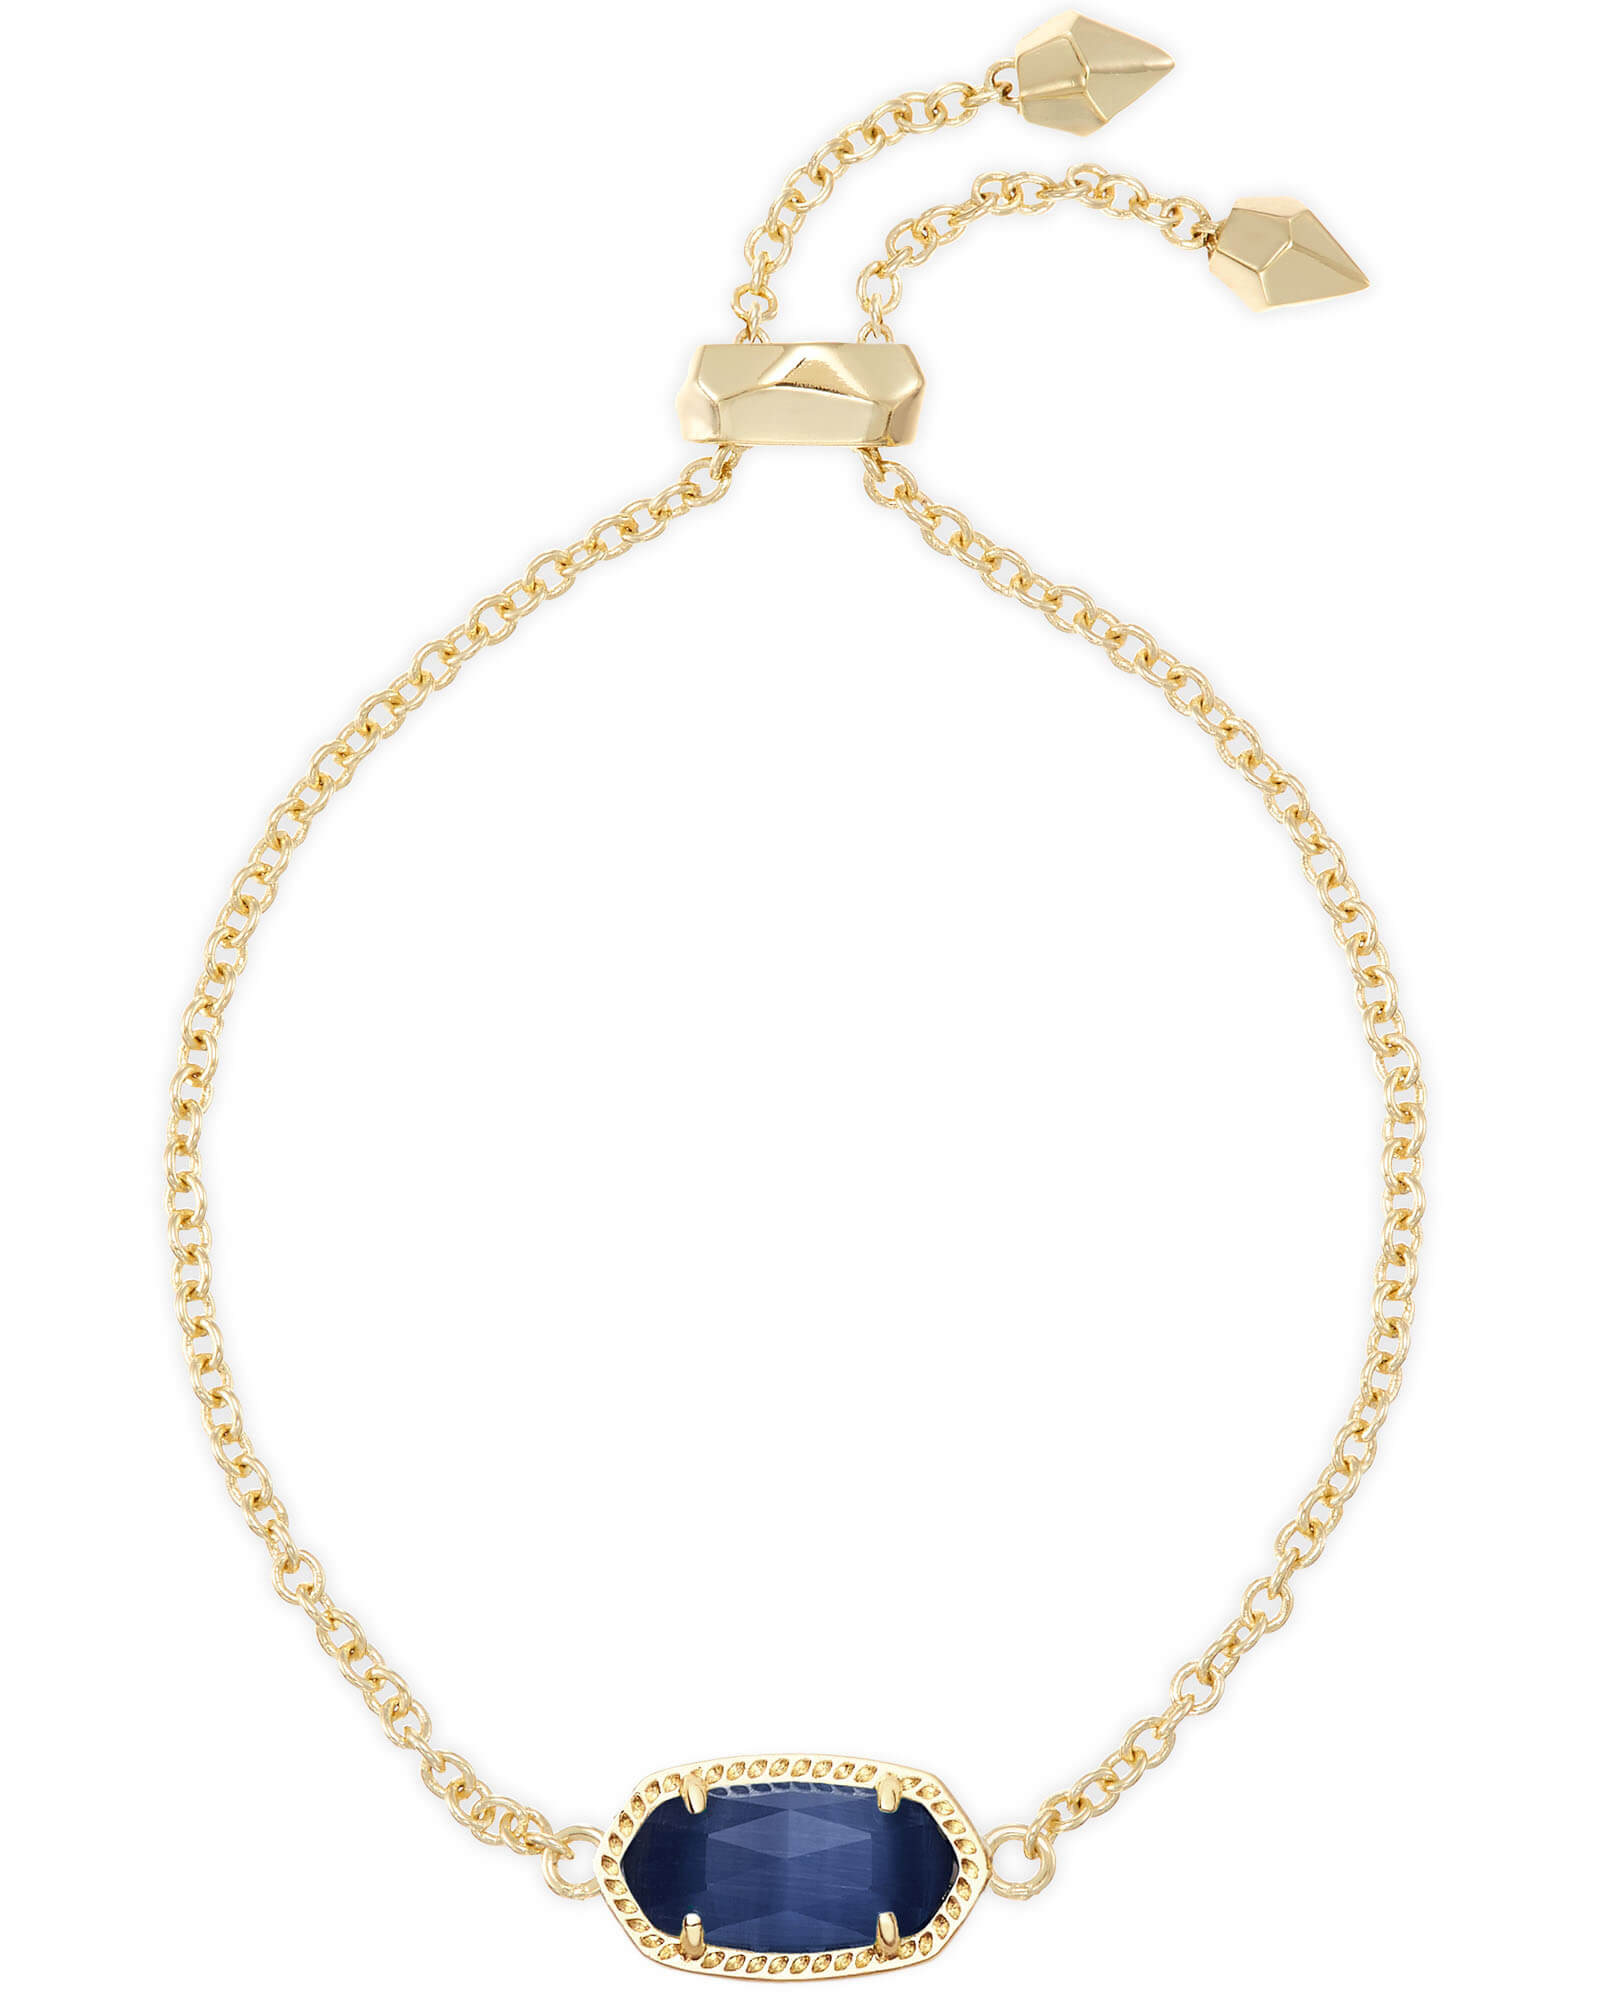 Elaina Gold Adjustable Chain Bracelet in Navy Cat's Eye